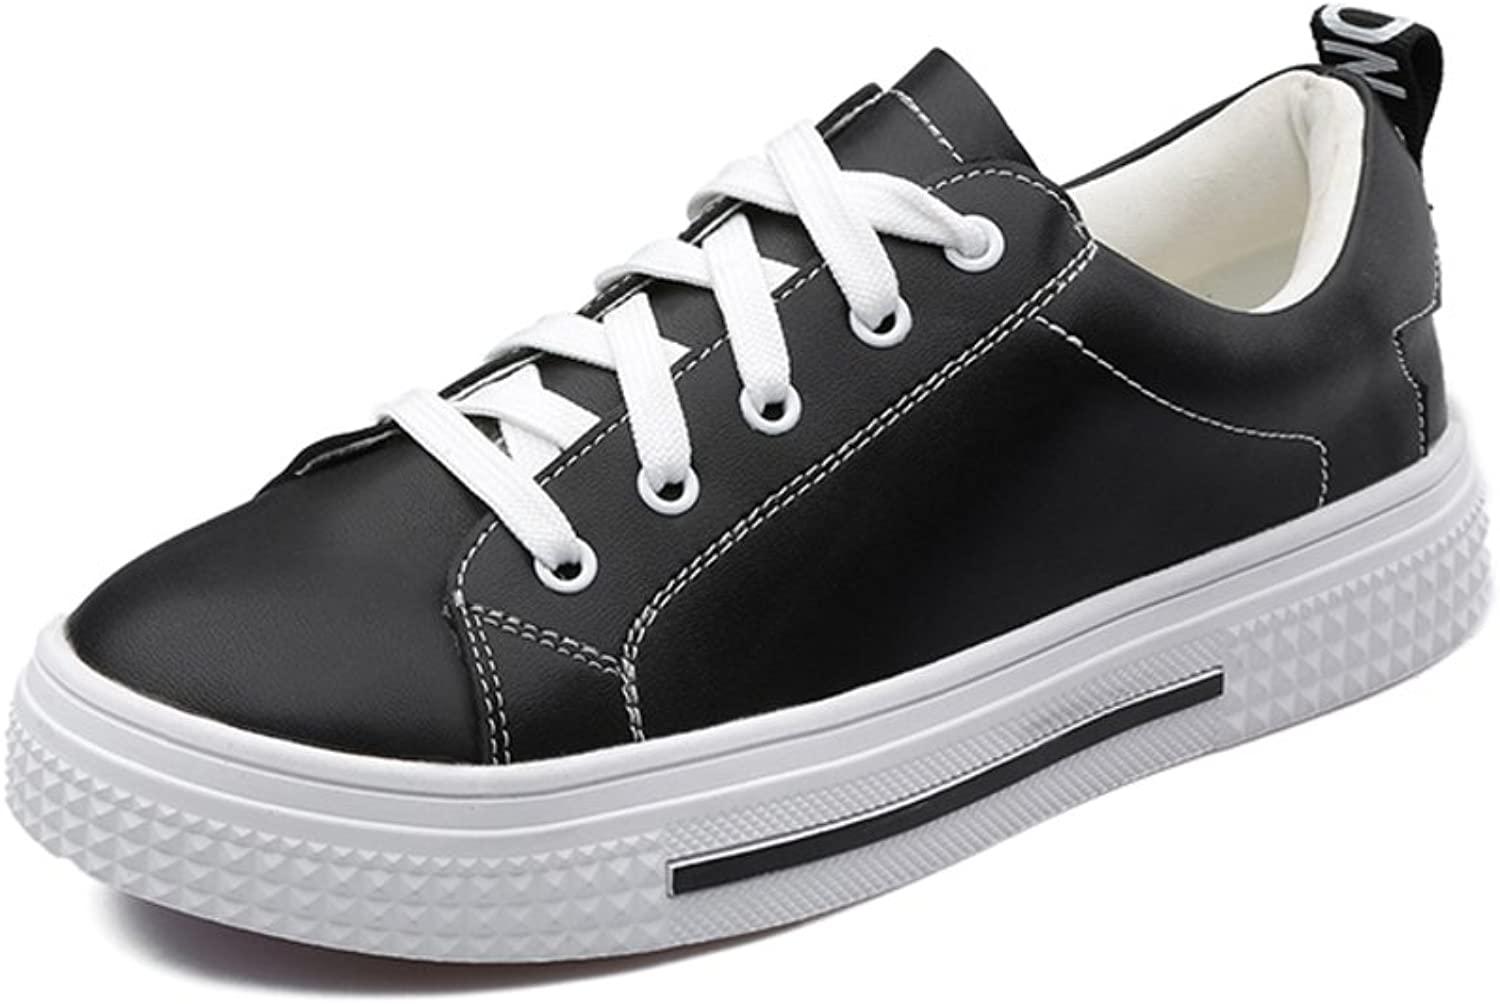 Huhuj First layer of leather lace casual shoes Comfortable flat leather shoes